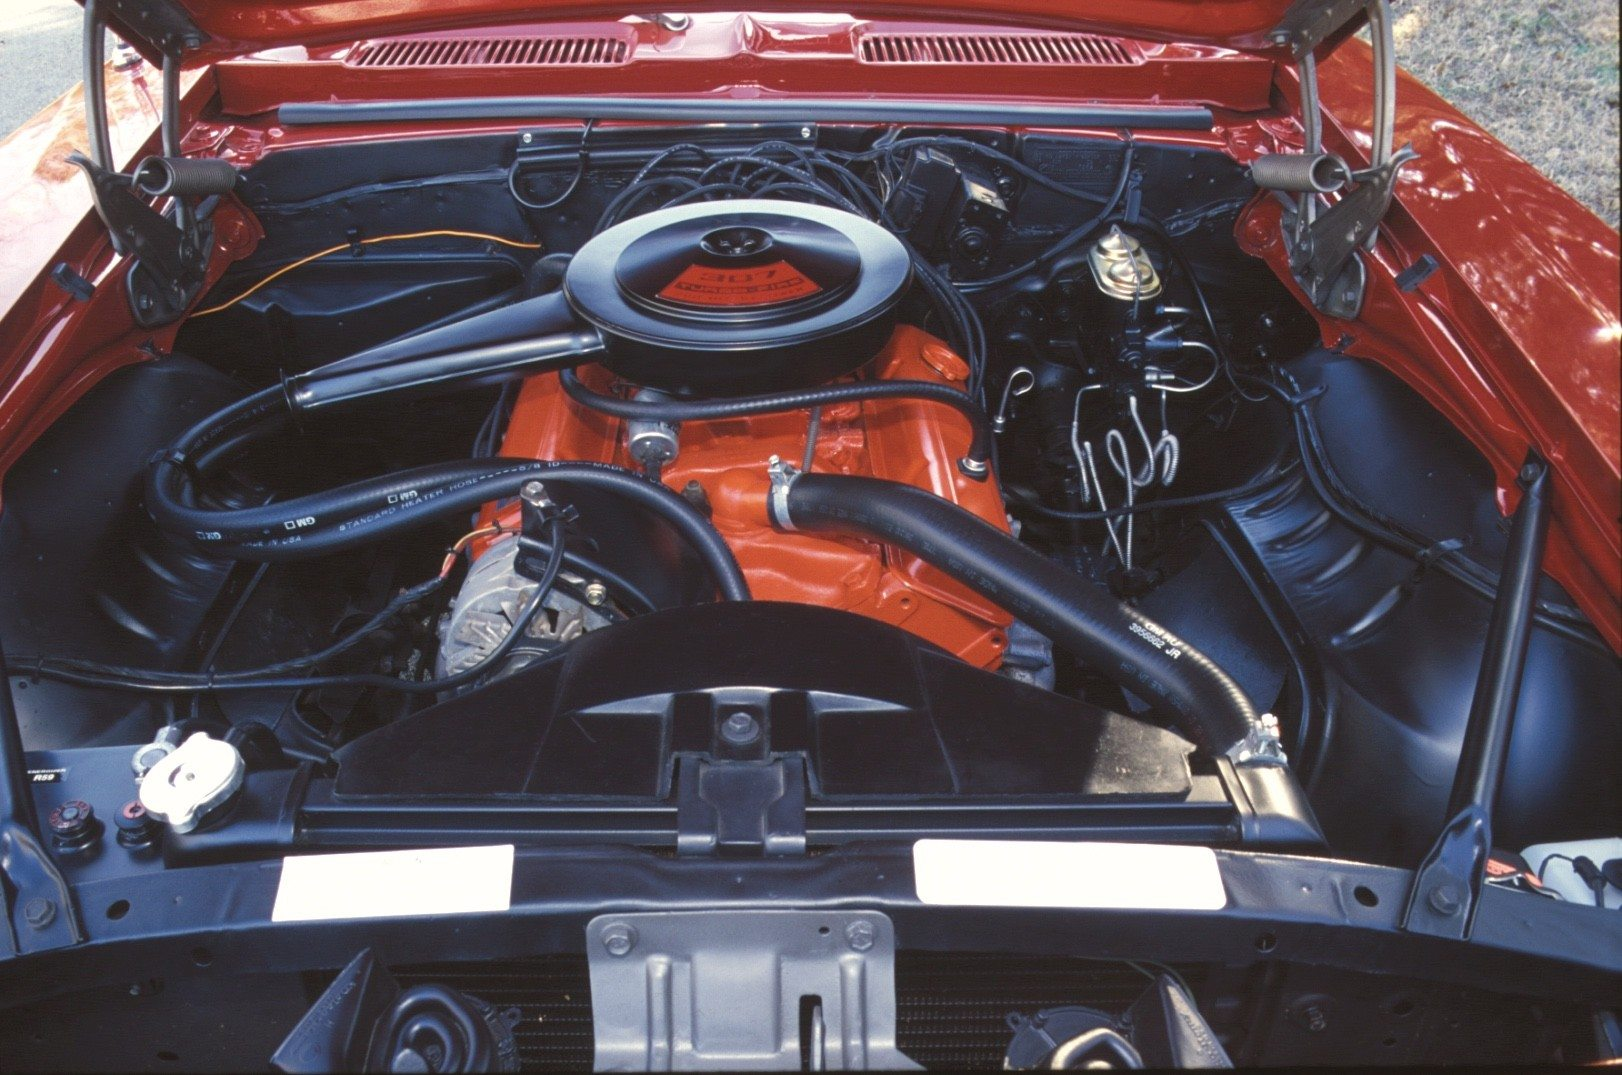 1969 Chevy Camaro 307 V8 Engine